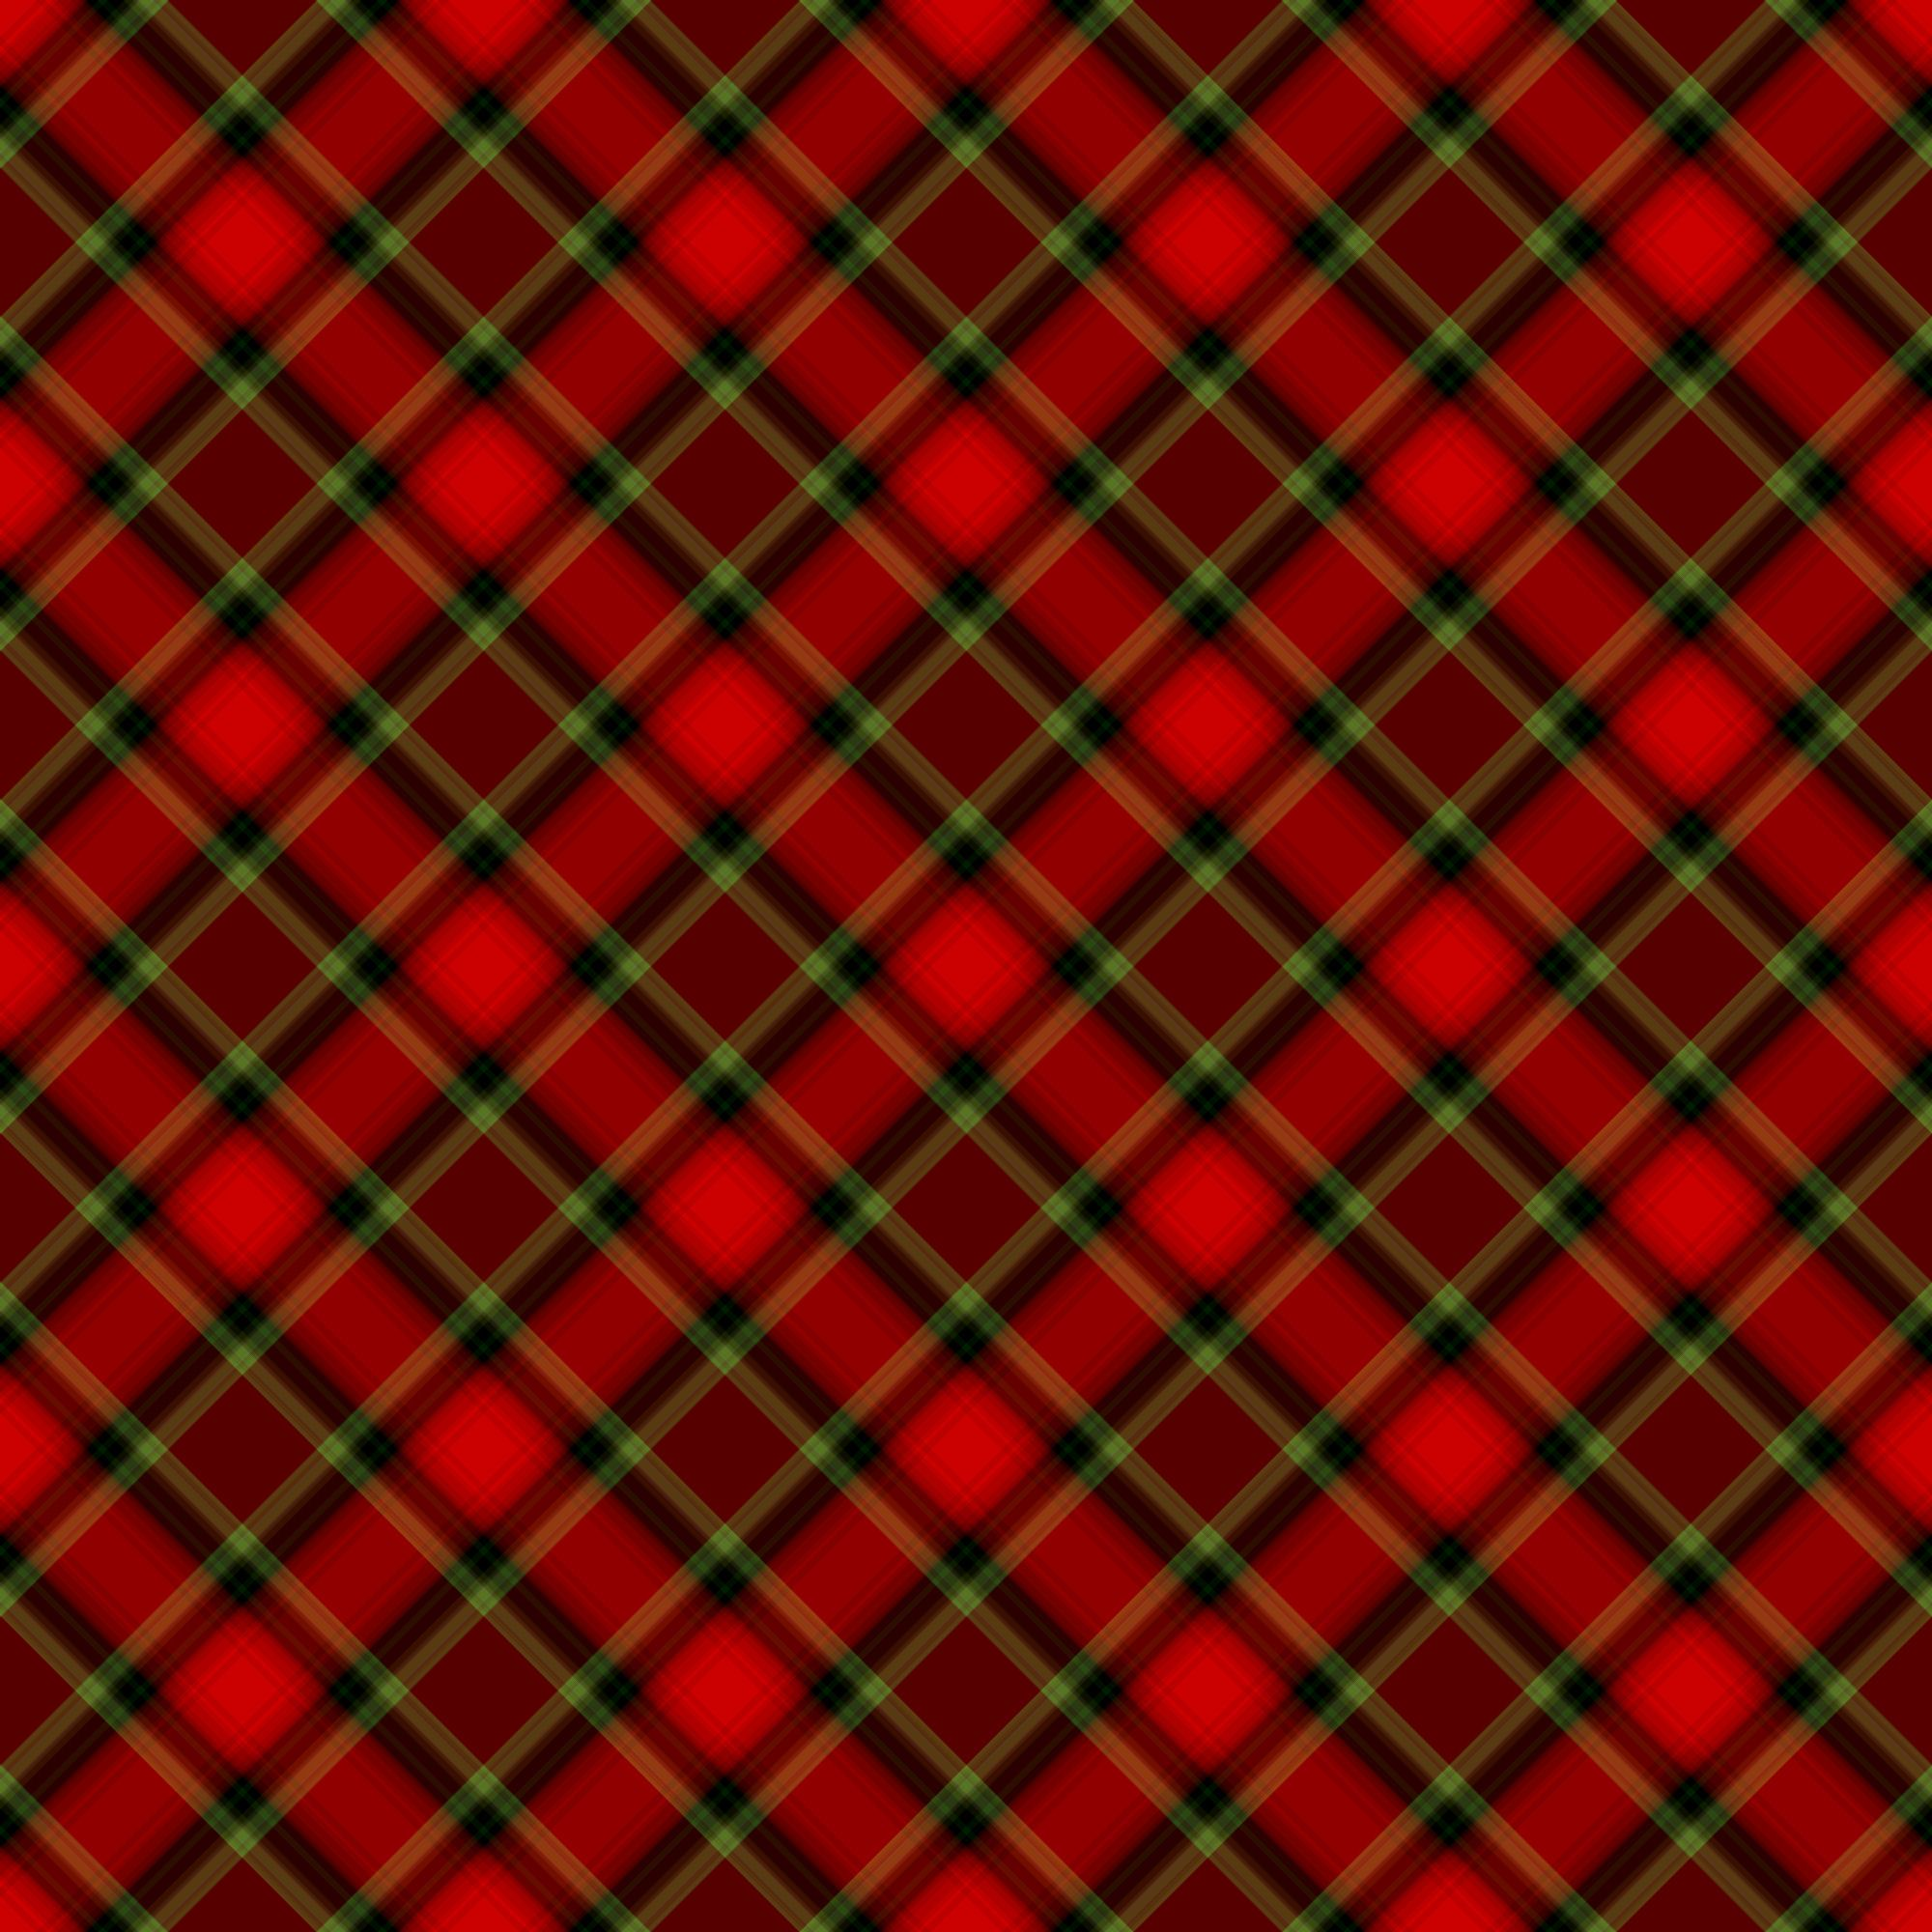 Seamless Plaid 0021 by AvanteGardeArt on deviantART